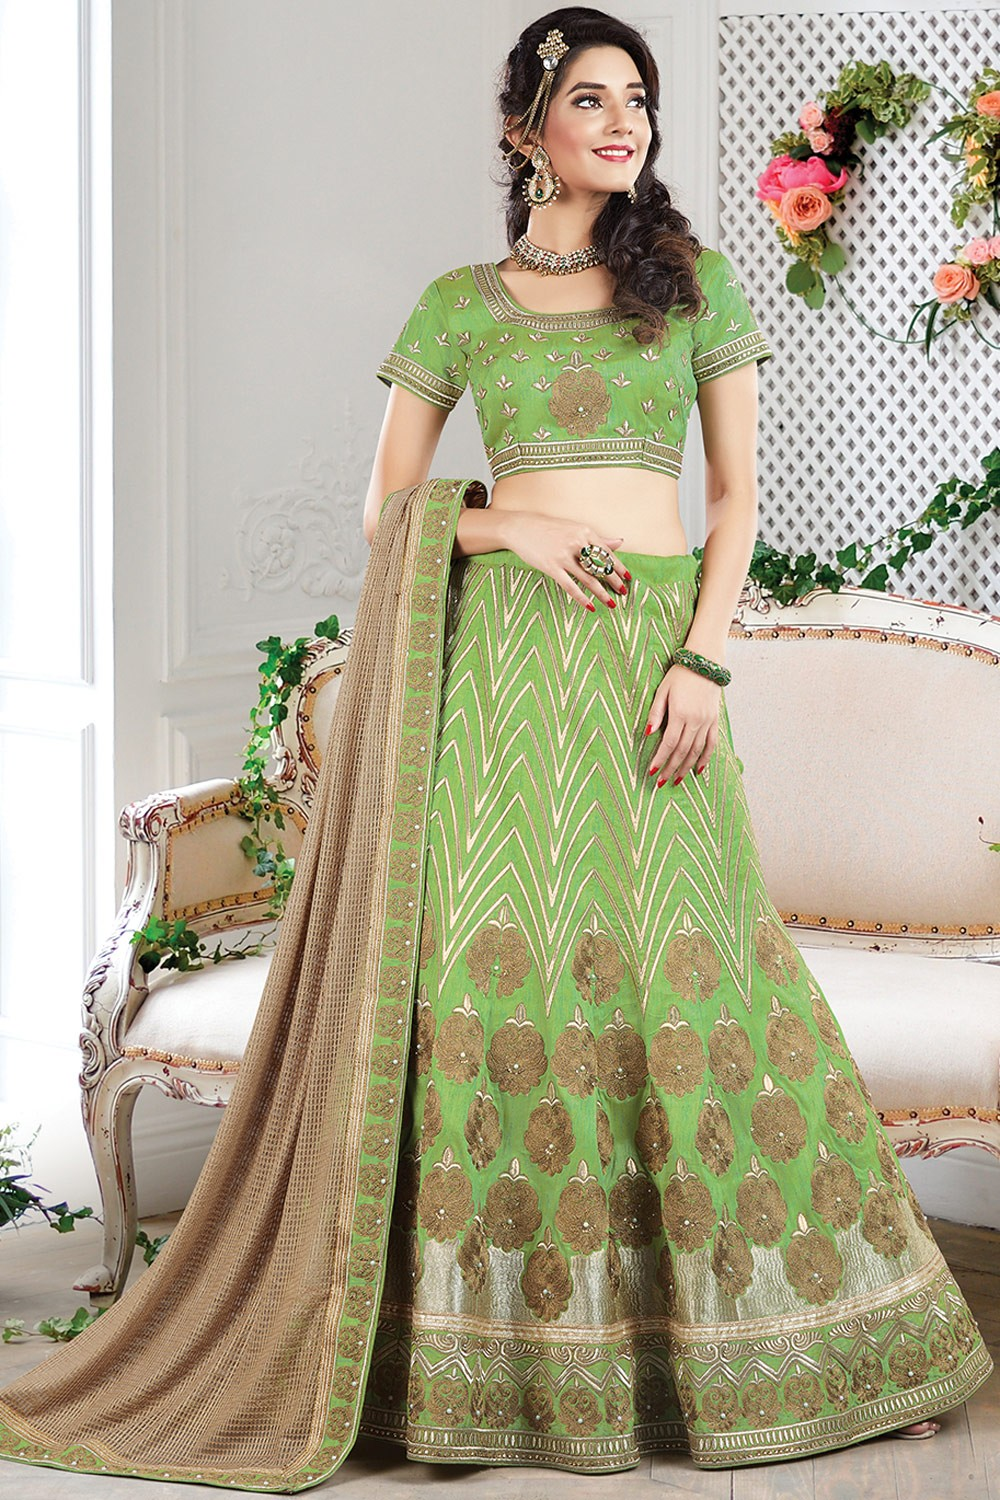 Paaneri Designer Light Green With Brown Color Floral Print Raw Silk Unstich Lehenga With Fancy Net Pallu-Product Code-17119710505